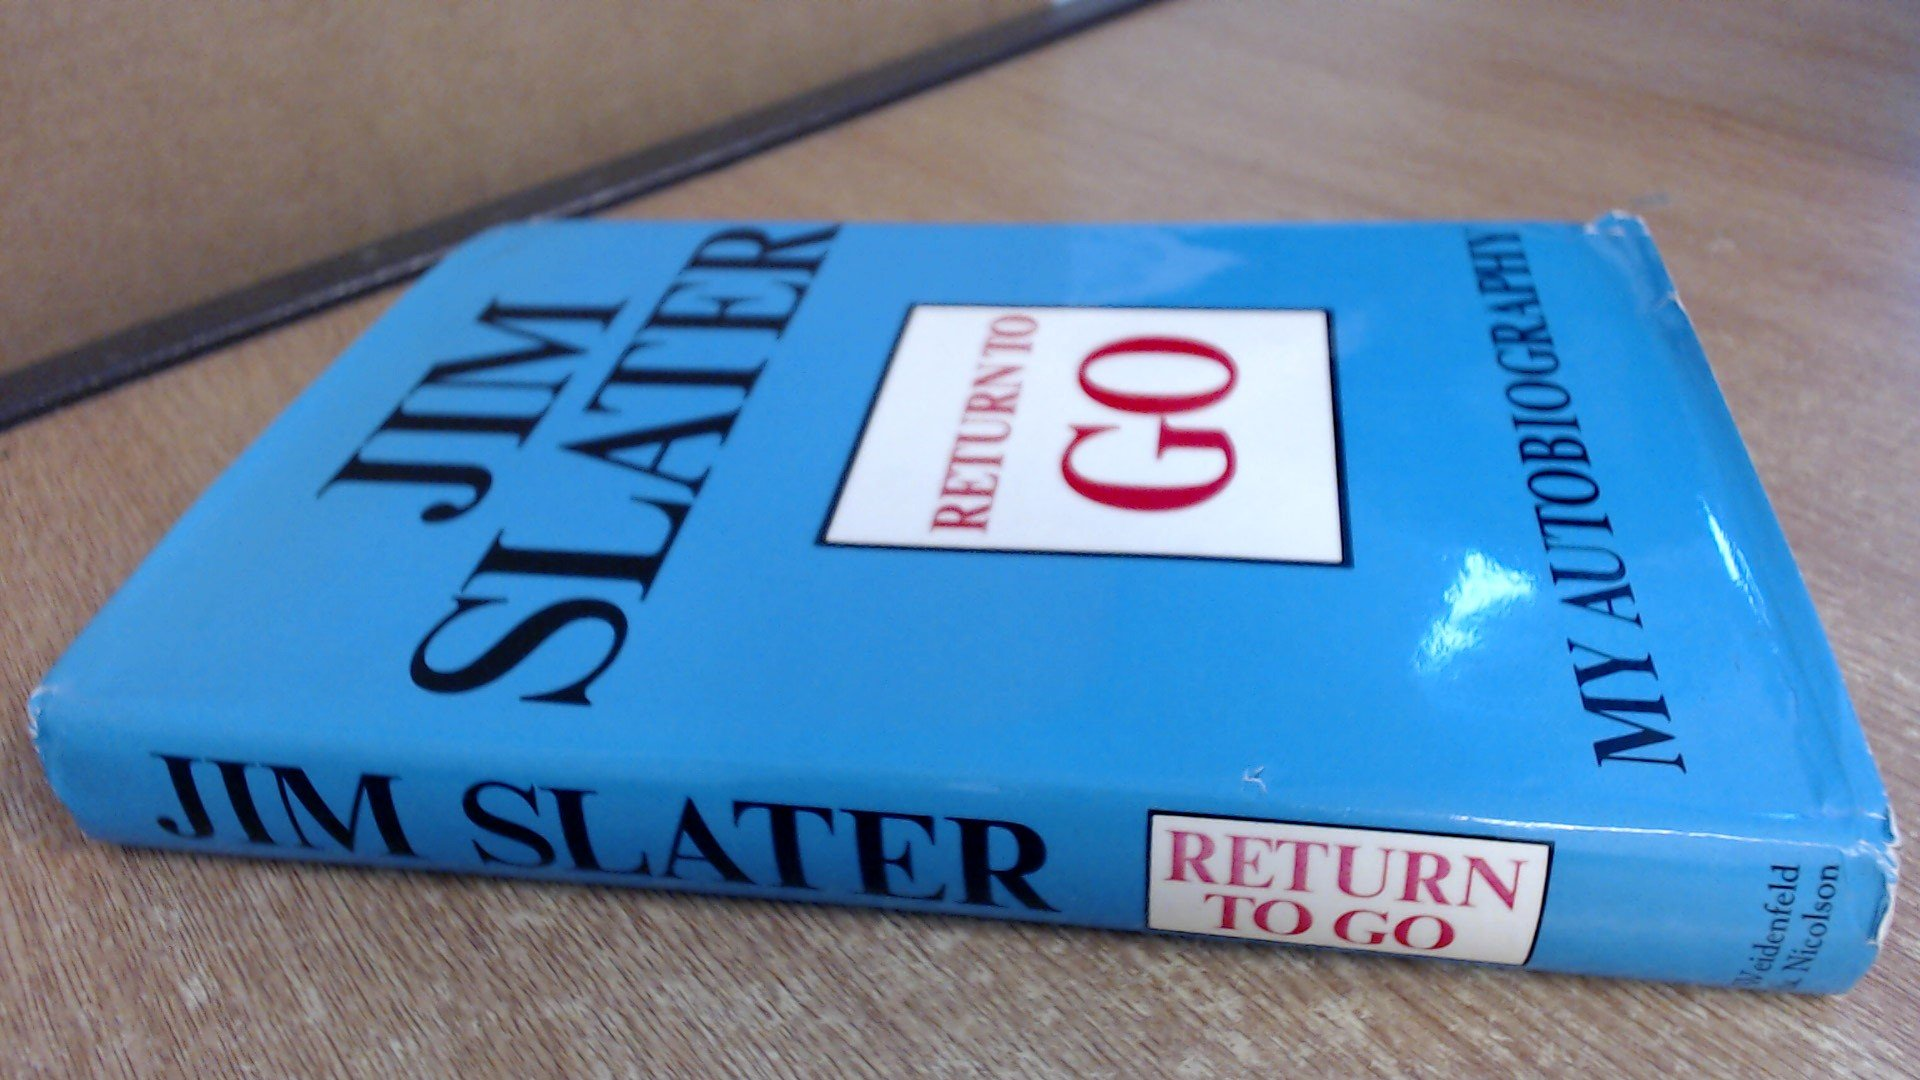 Return to Go, Jim Slater